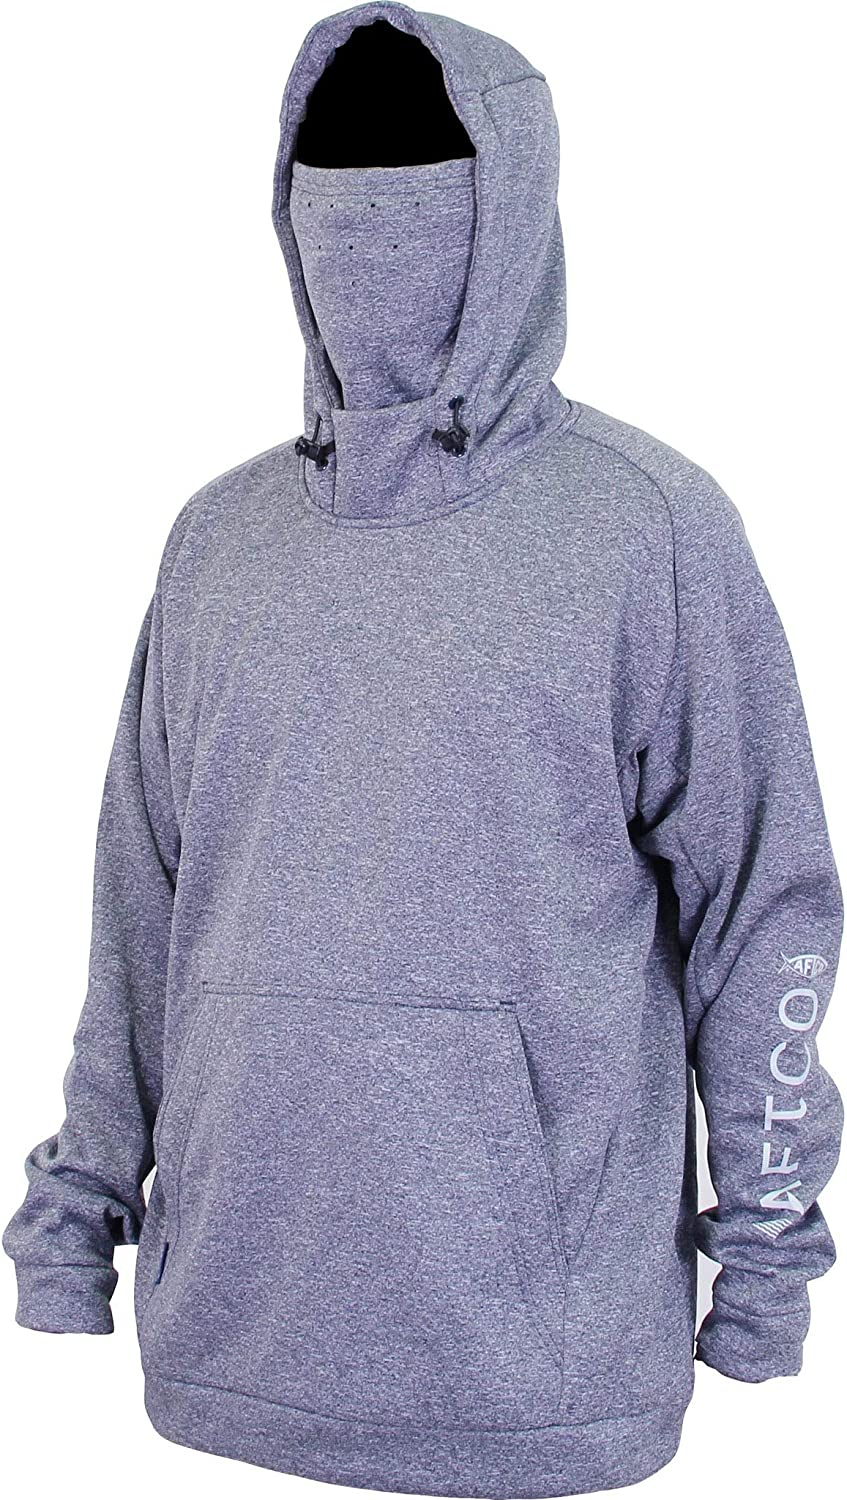 AFTCO Reaper Technical Fleece Hoodie